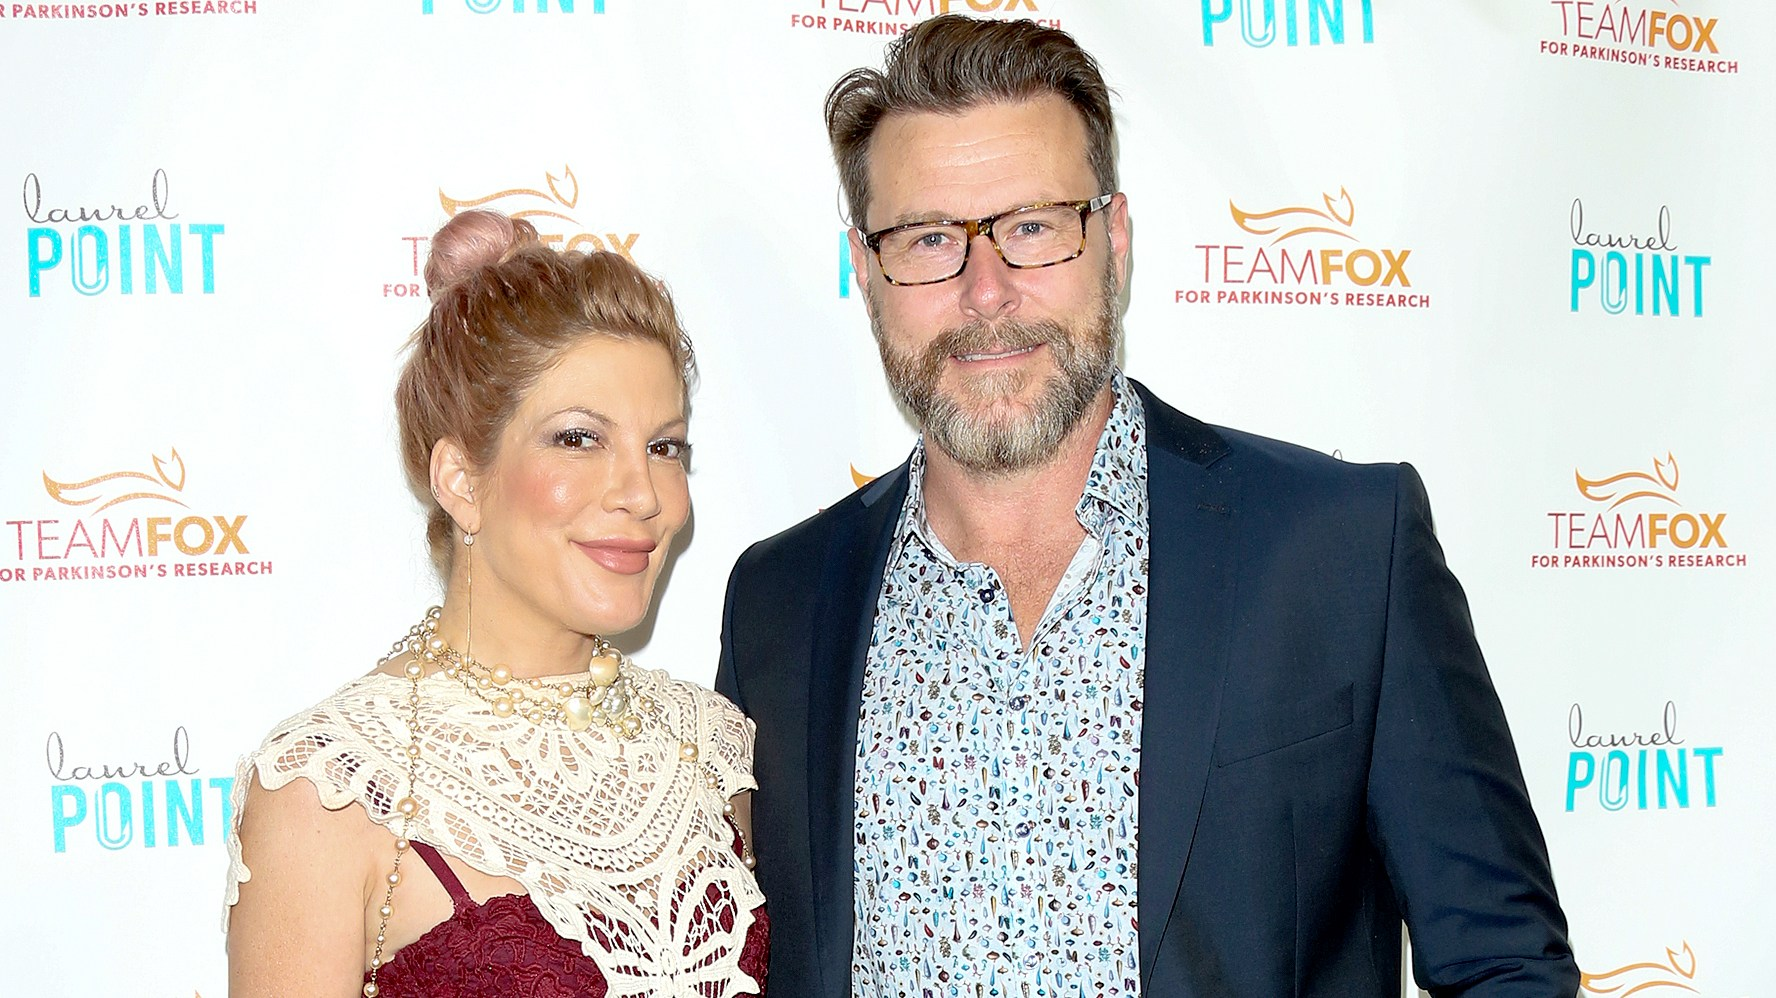 "Tori Spelling and Dean McDermott attend the ""Raising The Bar To End Parkinson's"" at Laurel Point on July 27, 2016 in Studio City, California."